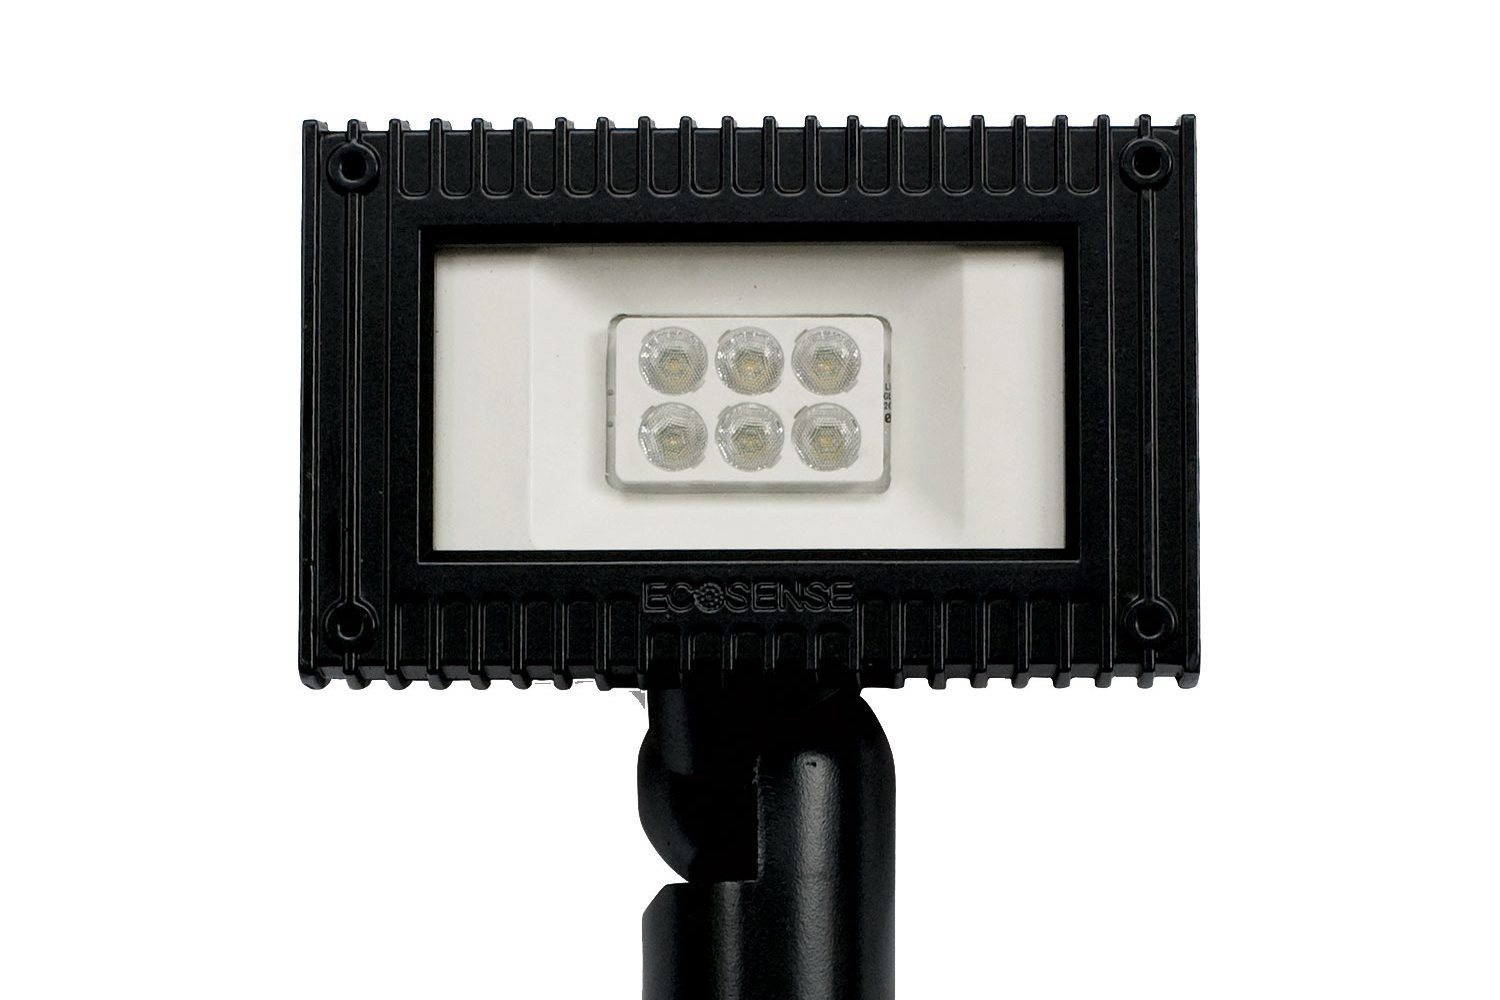 EcoSpec Landscape Floodlight Mini